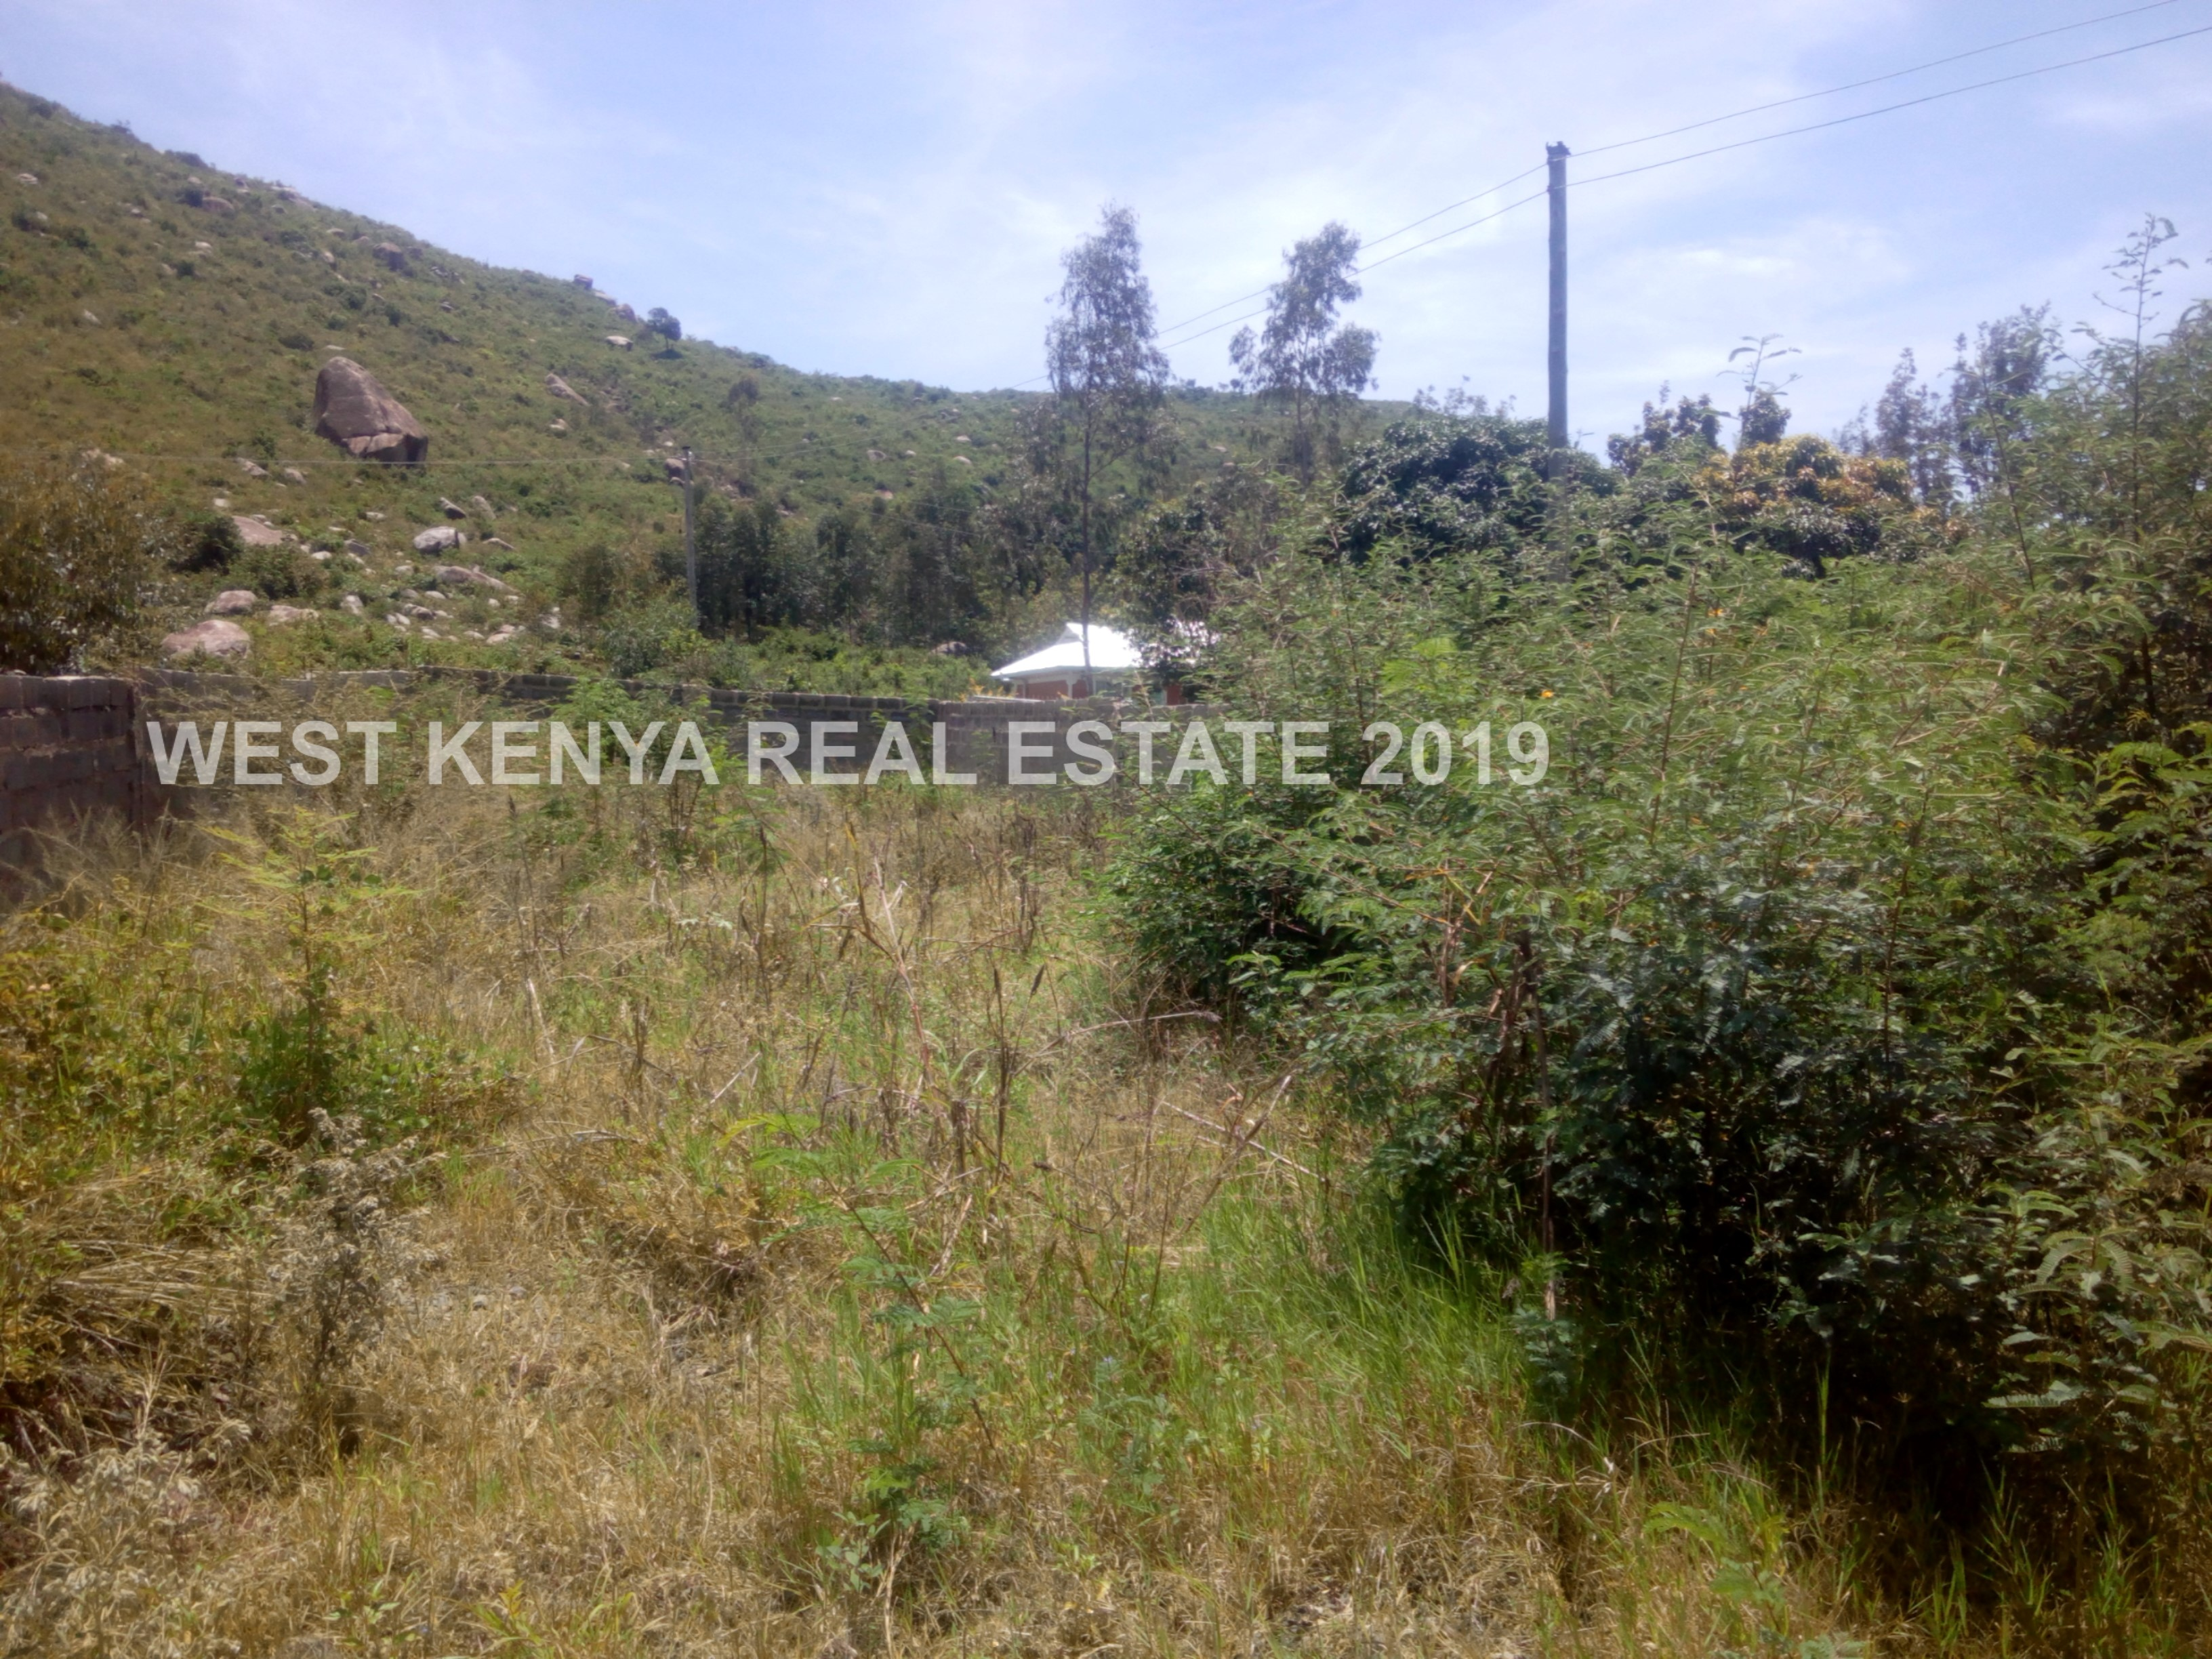 land for hospitality development in Kisumu